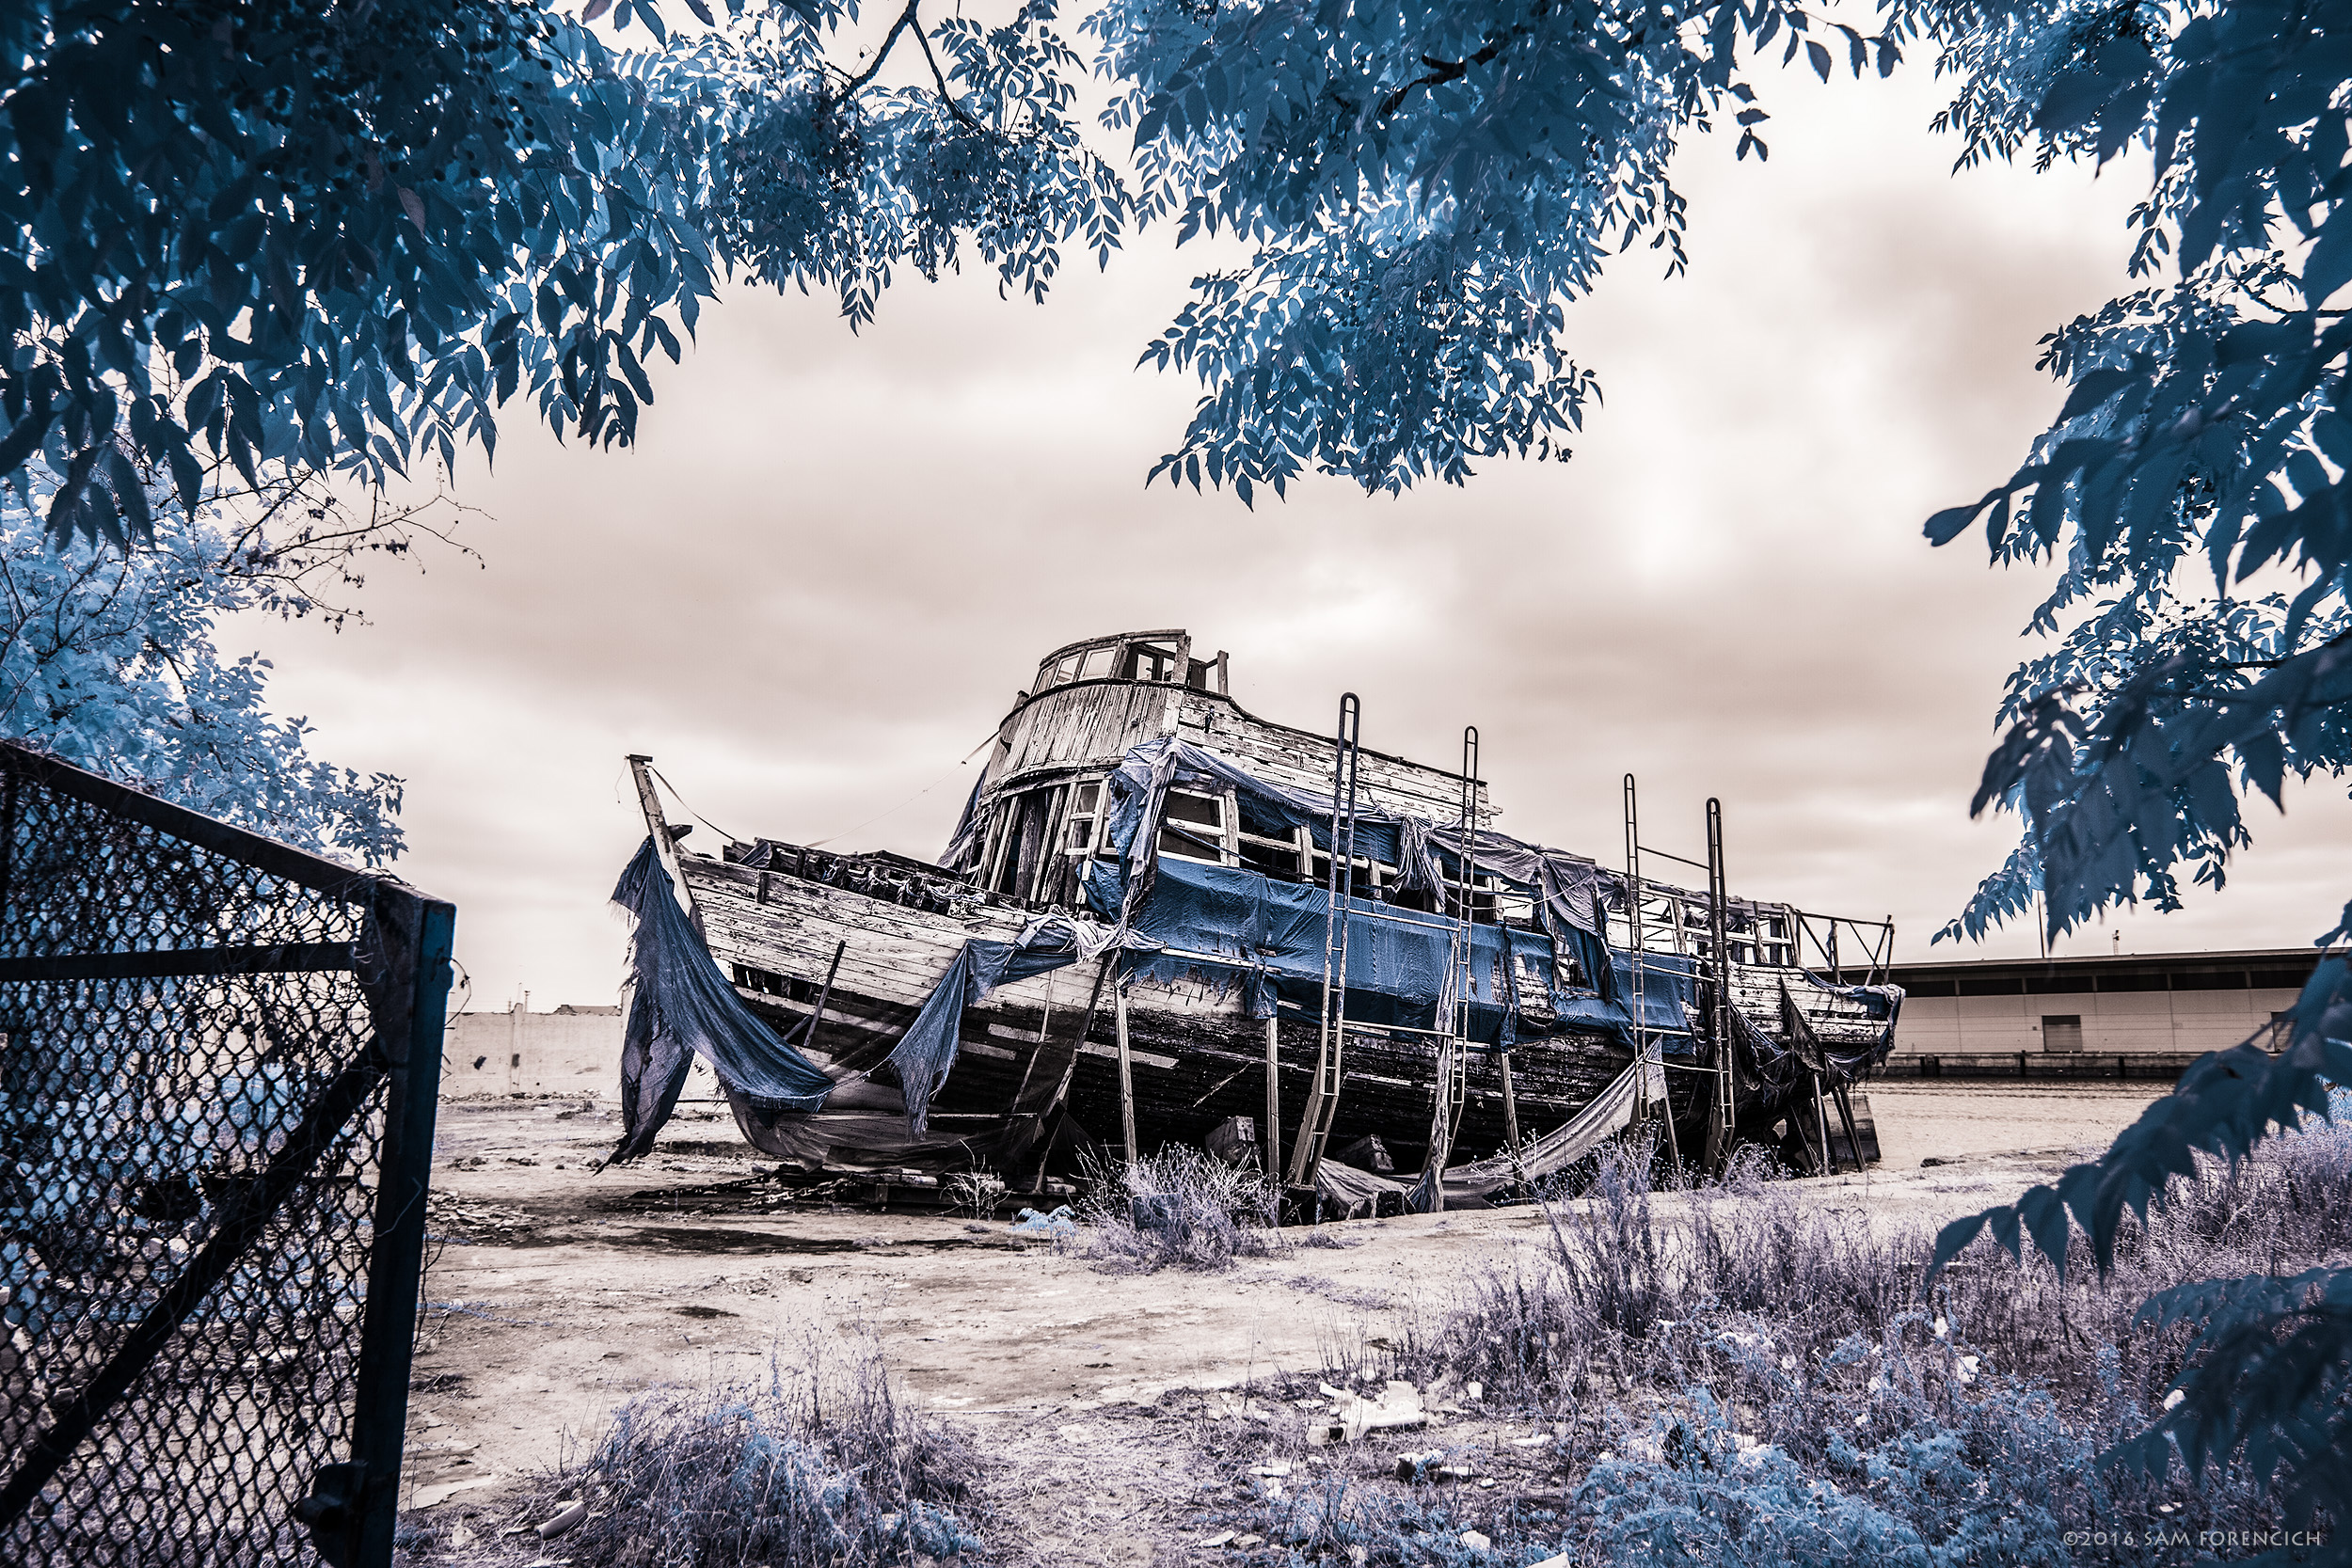 A formerly sunken vaporetto (water bus/taxi) awaits it's fate in dry dock near the harbor of El Puerto de Santa Maria on the southern Atlantic coast of Spain. IR converted Canon 5D Mark II. © 2015 Sam Forencich